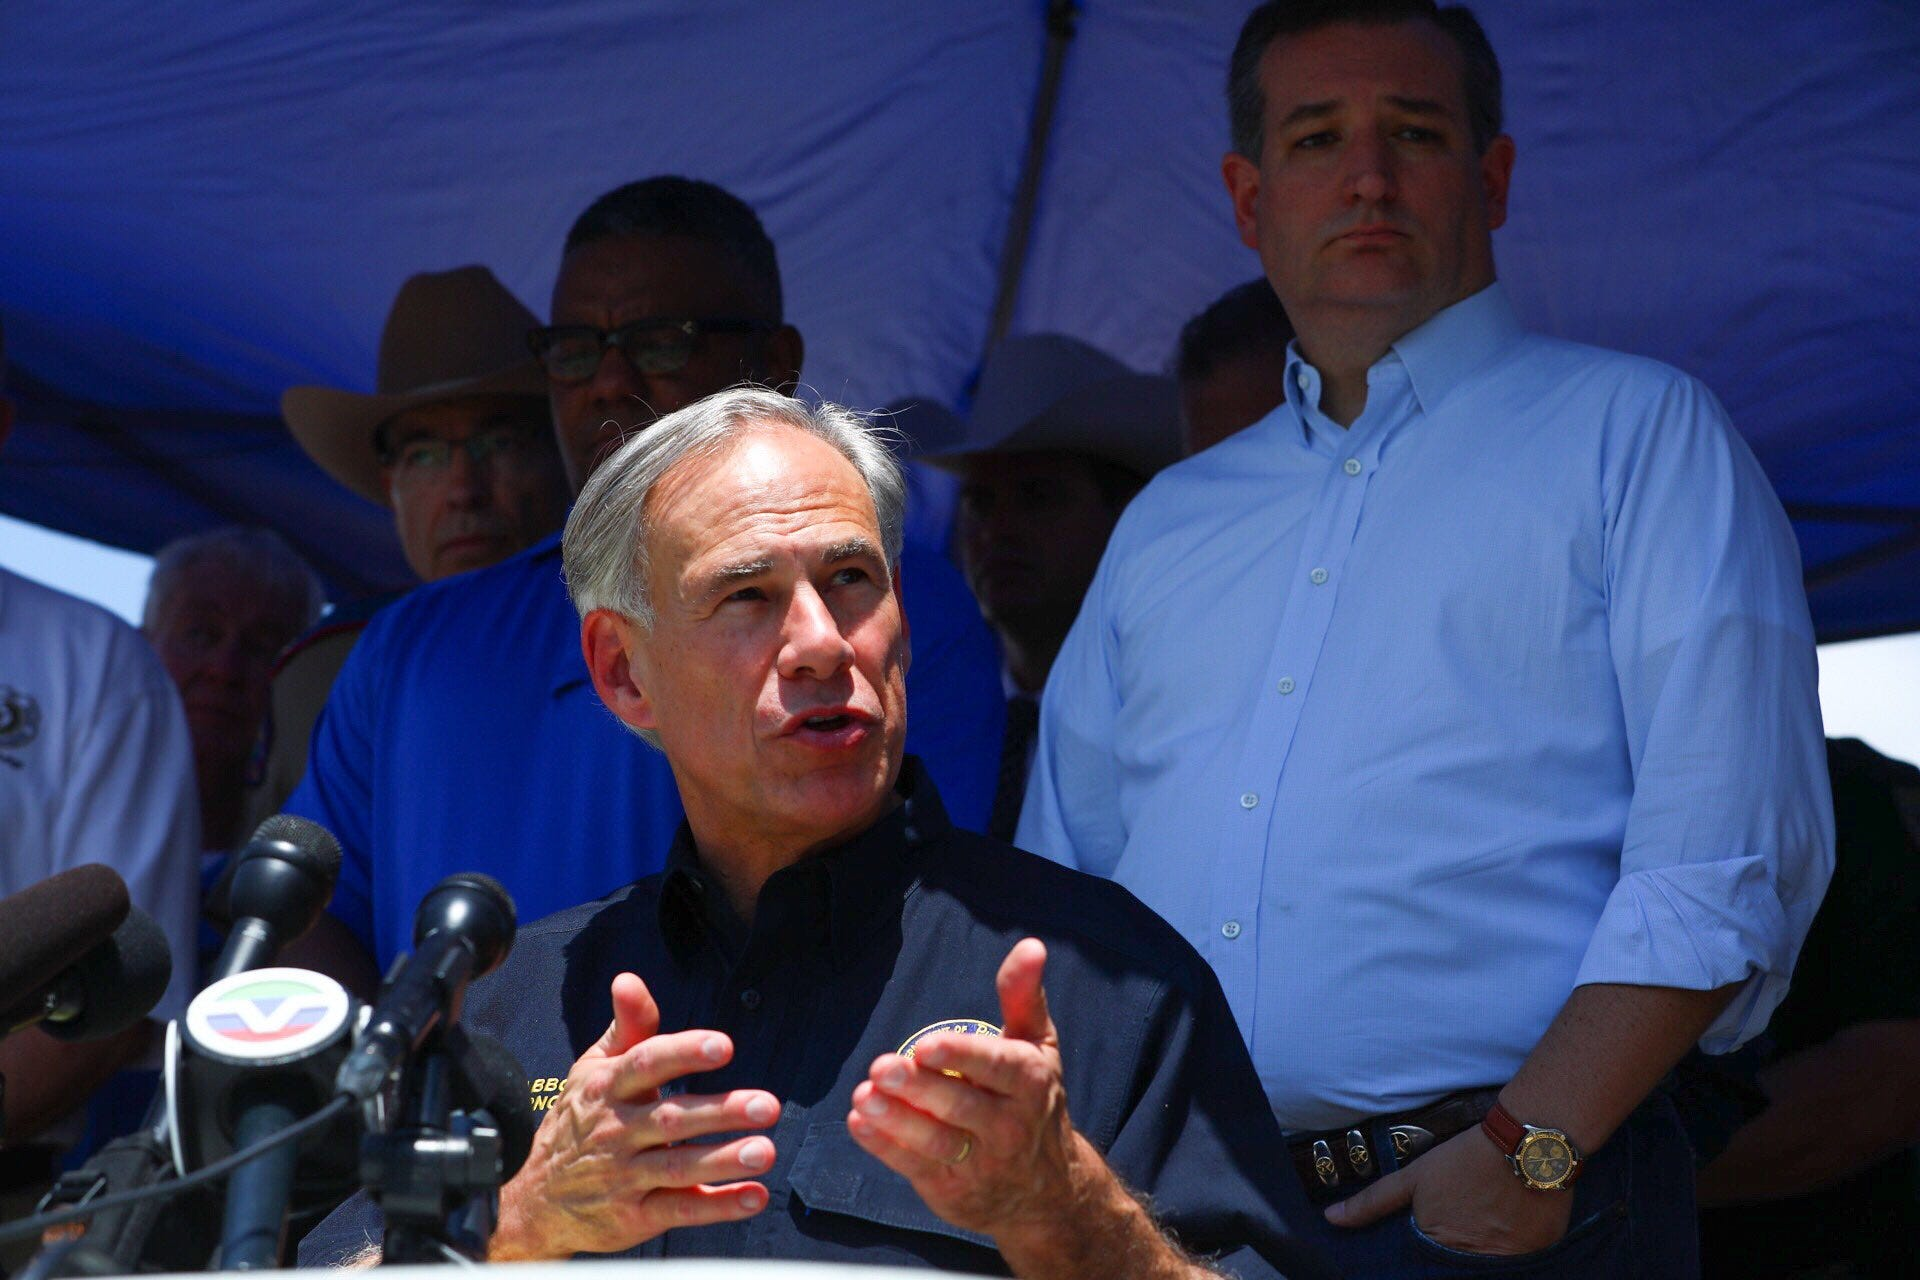 Greg Abbott has been governor of Texas since 2015 and seen five mass shootings.